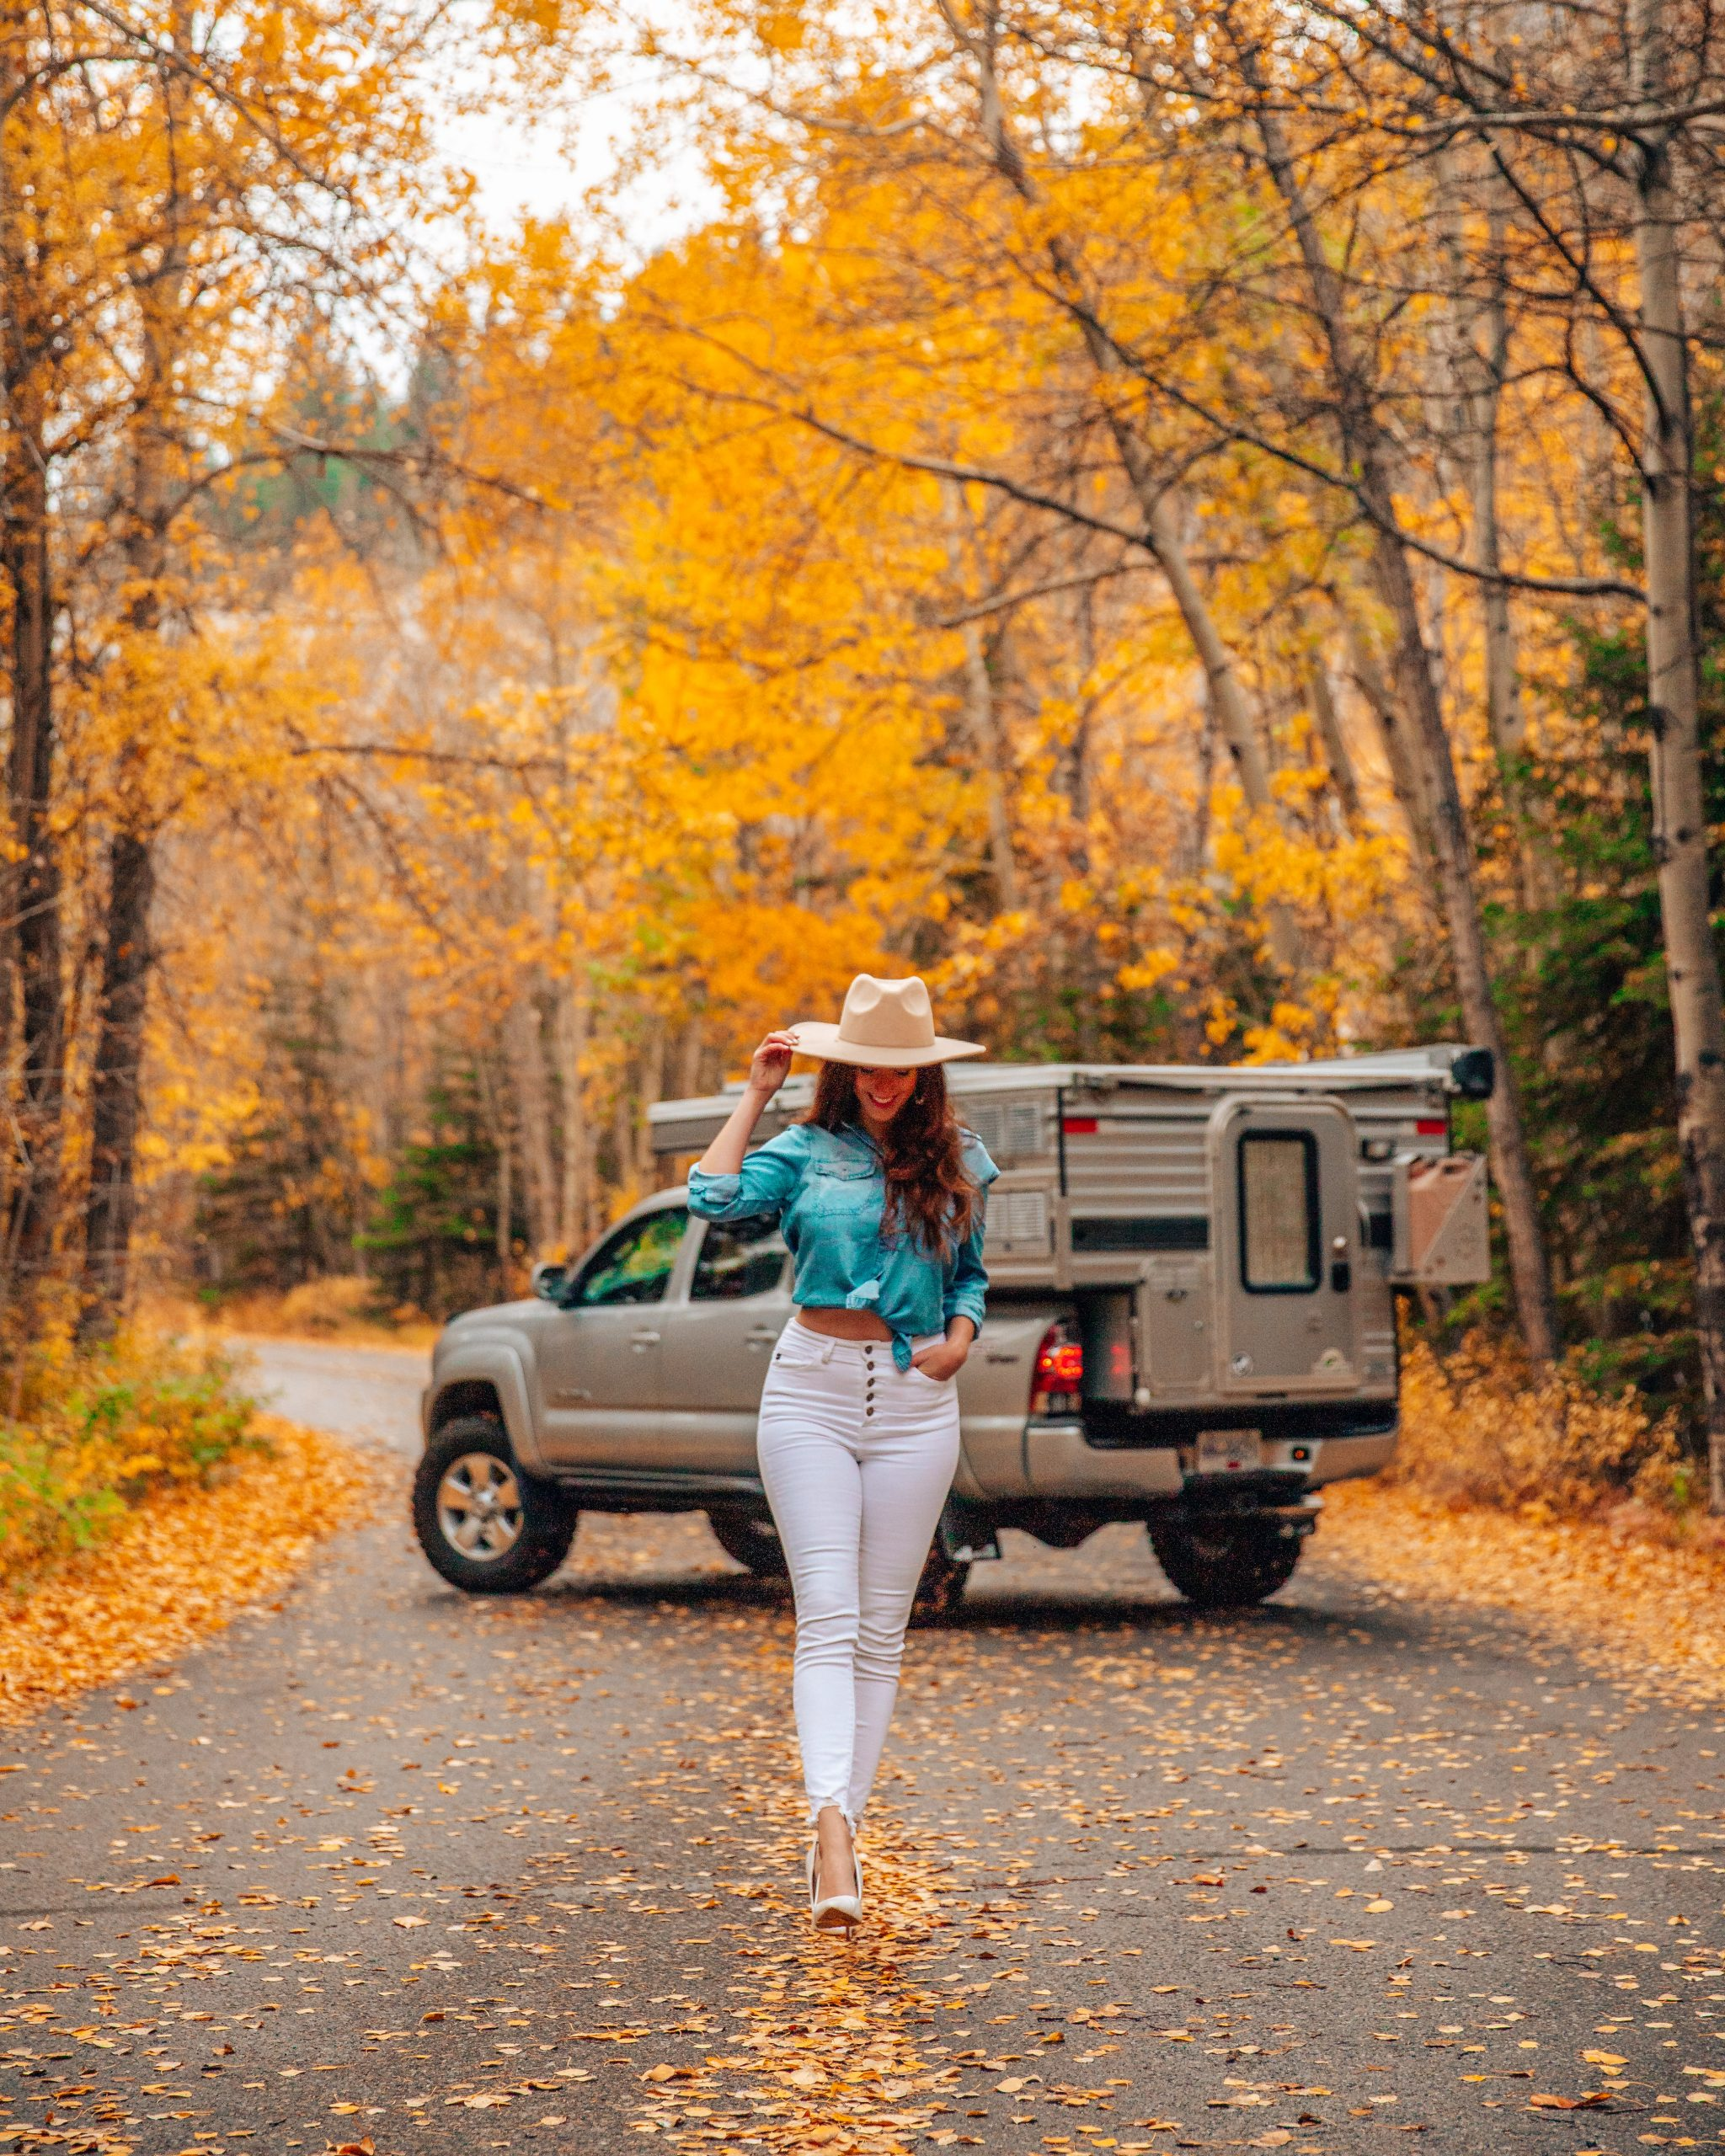 Swift Pop Up Camper in front of Fall Foliage